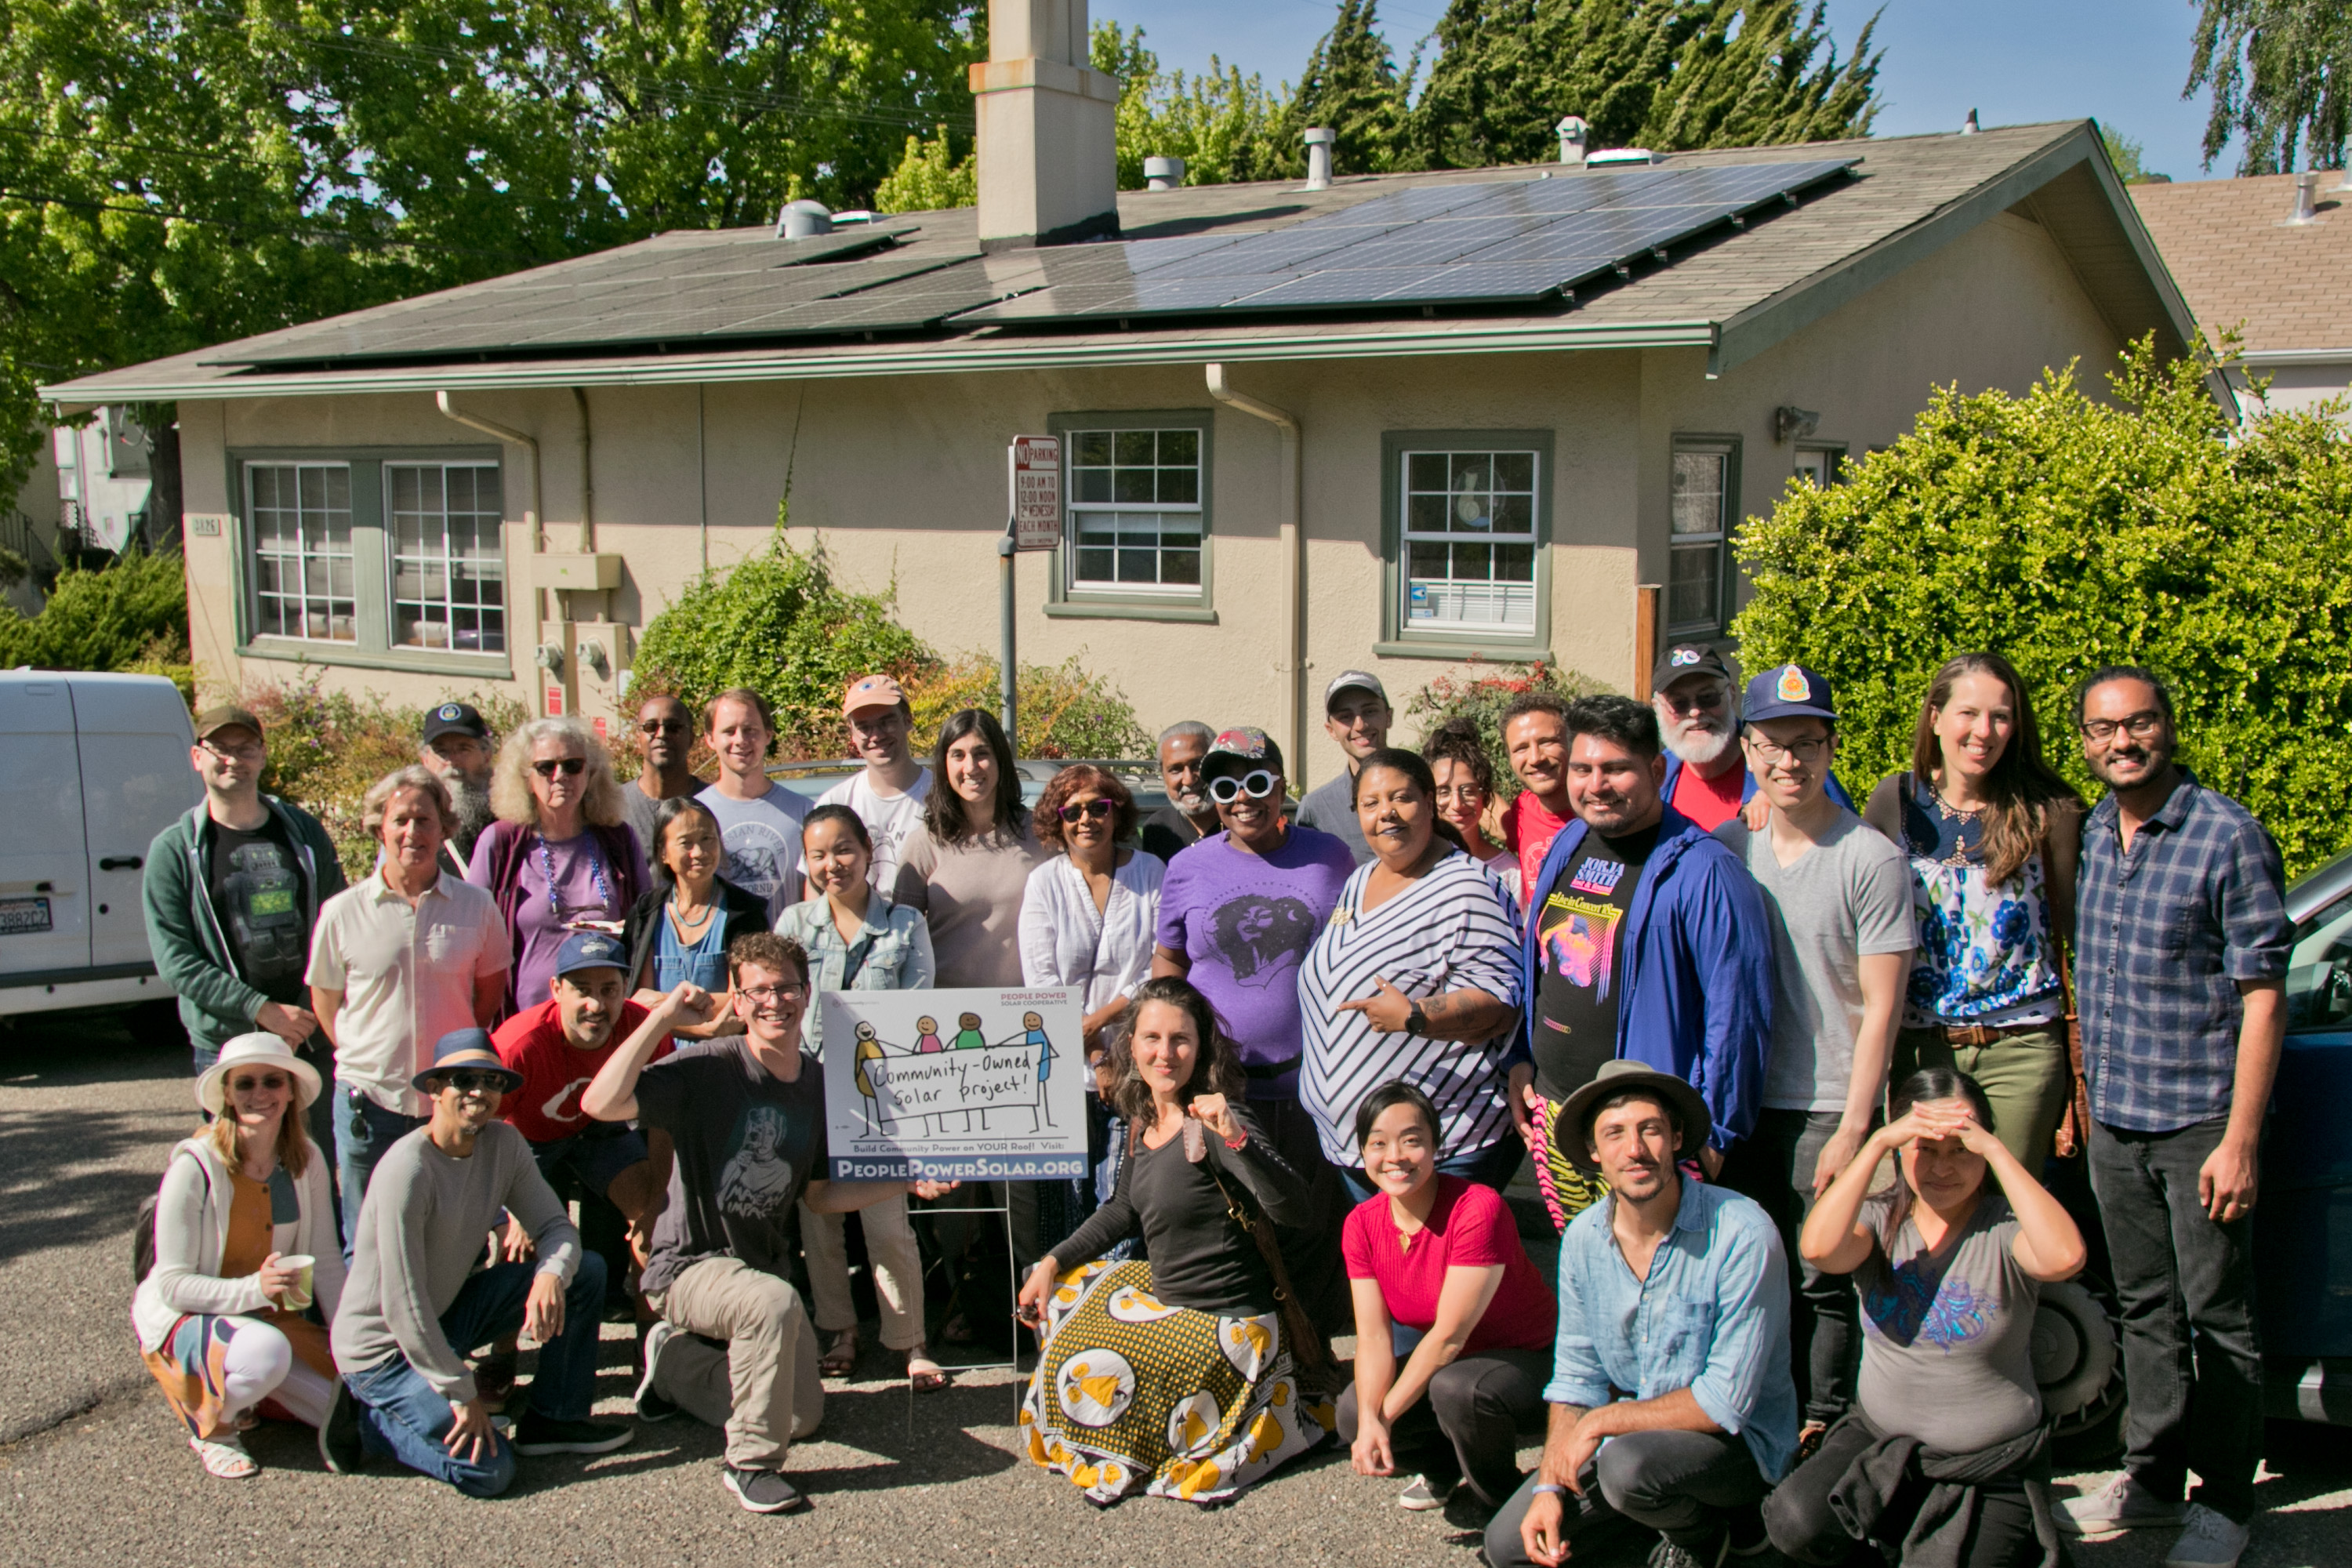 PEOPLE POWER SOLAR COOPERATIVE'S FIRST COMMUNITY-OWNED SOLAR P